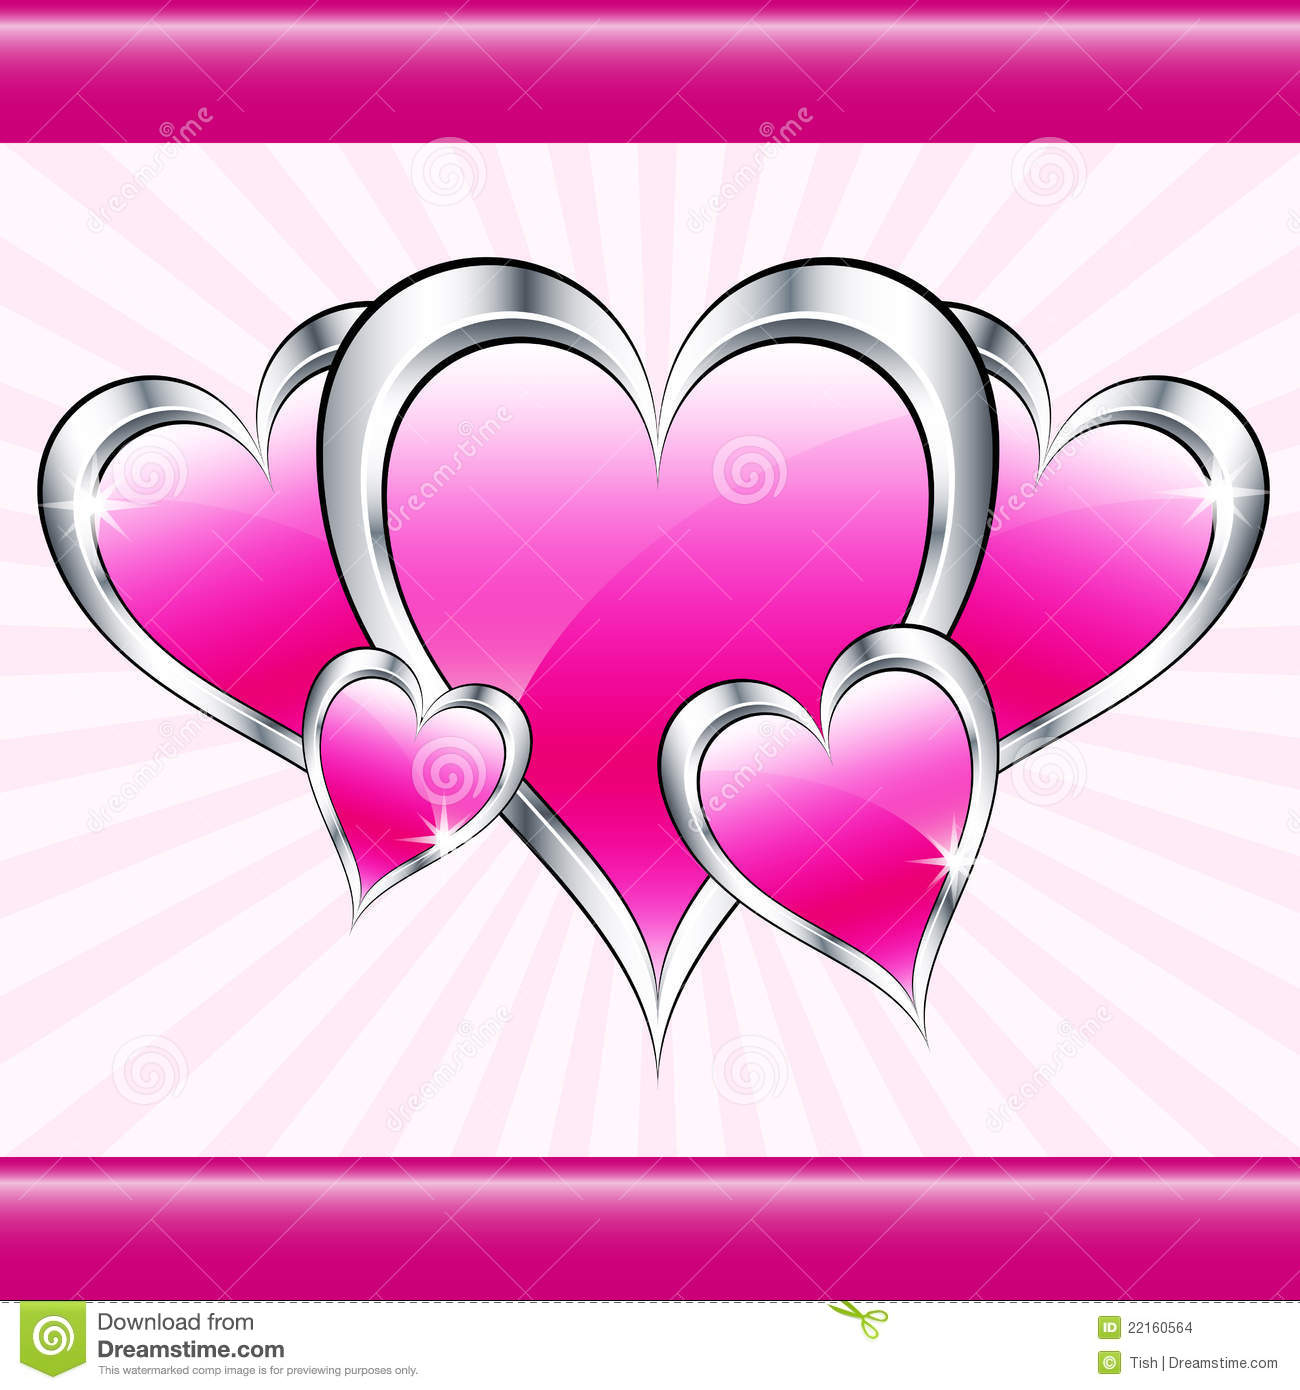 Pink Love Hearts And Starburst Stock Images - Image: 22160564